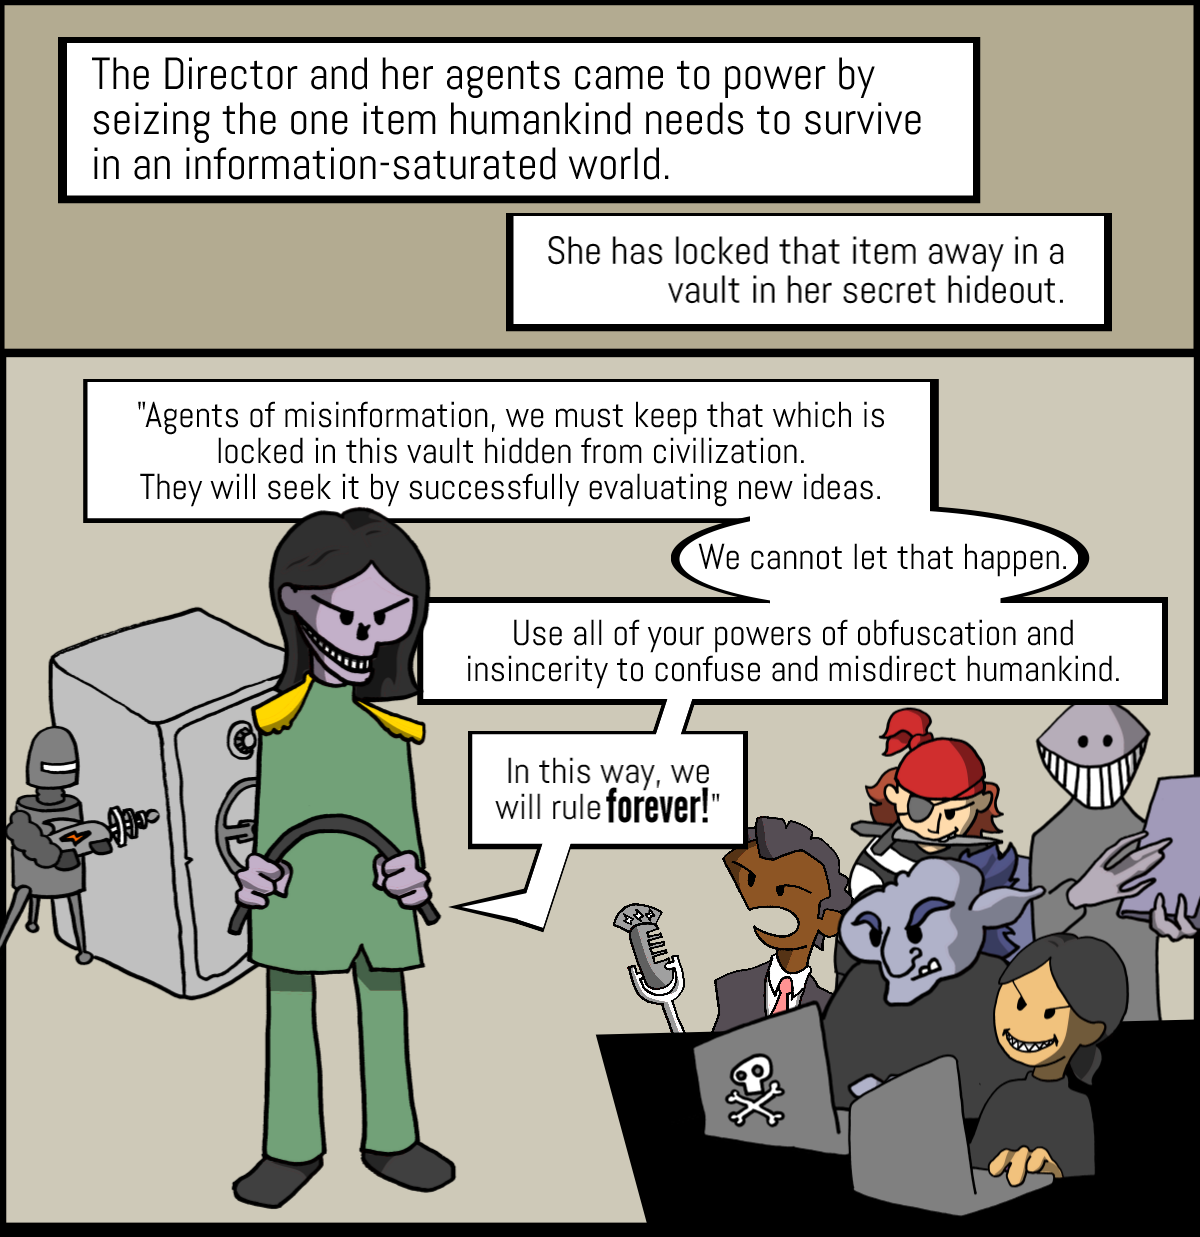 """The Director and her agents came to power by seizing the one item humankind needs to survive in an information-saturated world. She has locked that item away in a vault in her secret hideout.  """"Agents of misinformation, we must keep that which is locked in this vault hidden from civilization. They will seek it by successfully evaluating new ideas – we cannot let this happen. Use all of your powers of obfuscation and insincerity to confuse and misdirect humankind. In this way, we will rule forever!"""""""